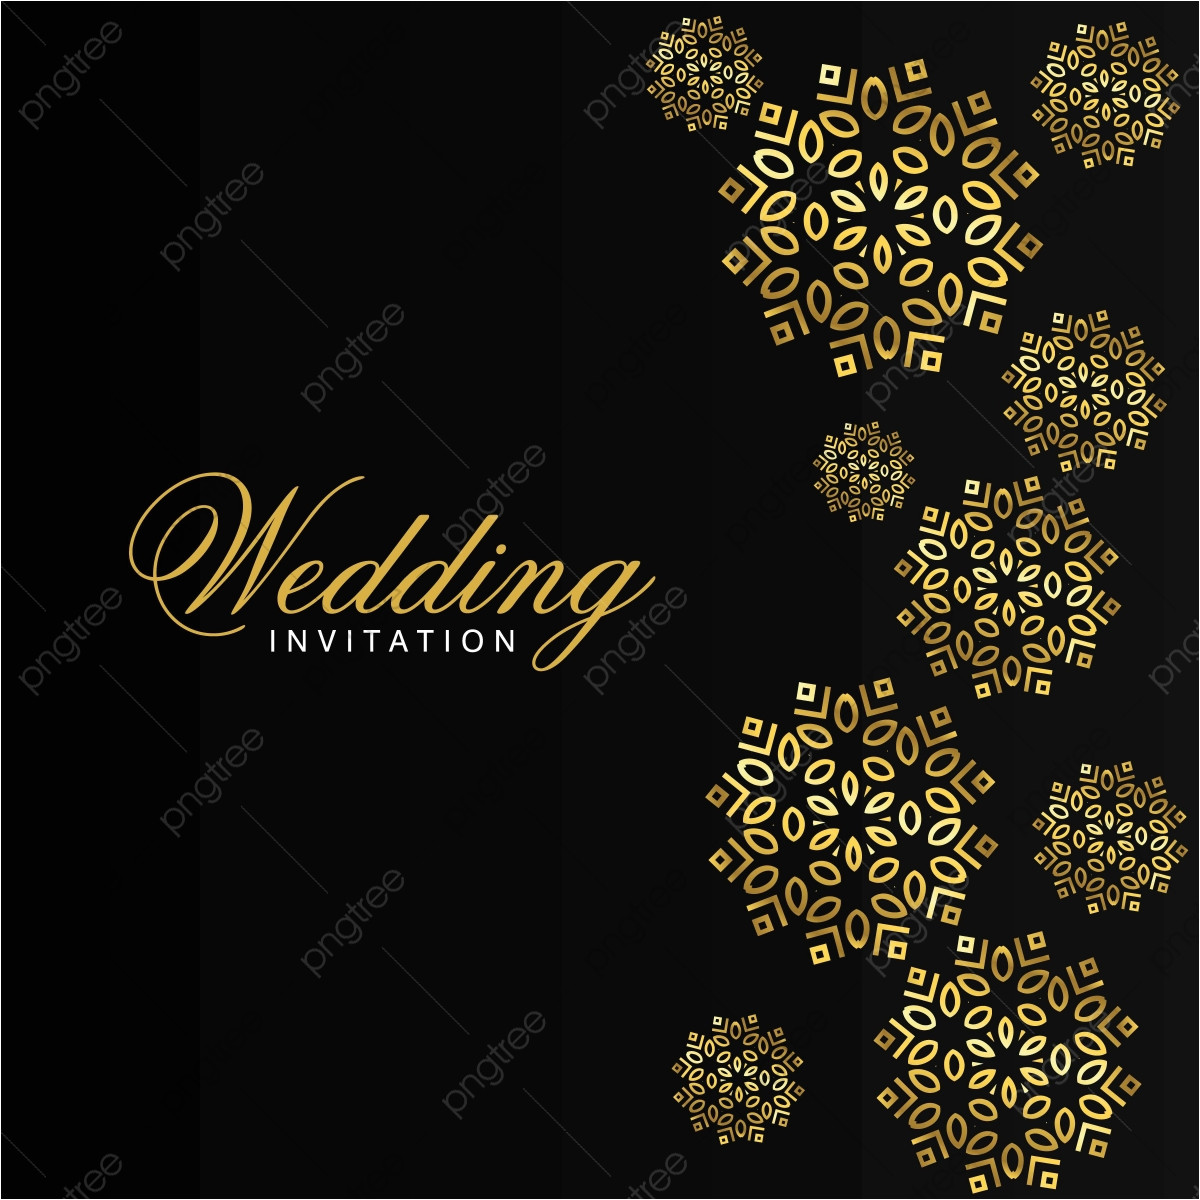 pngtree wedding card with creative design and elegent style png image 3733802 jpg